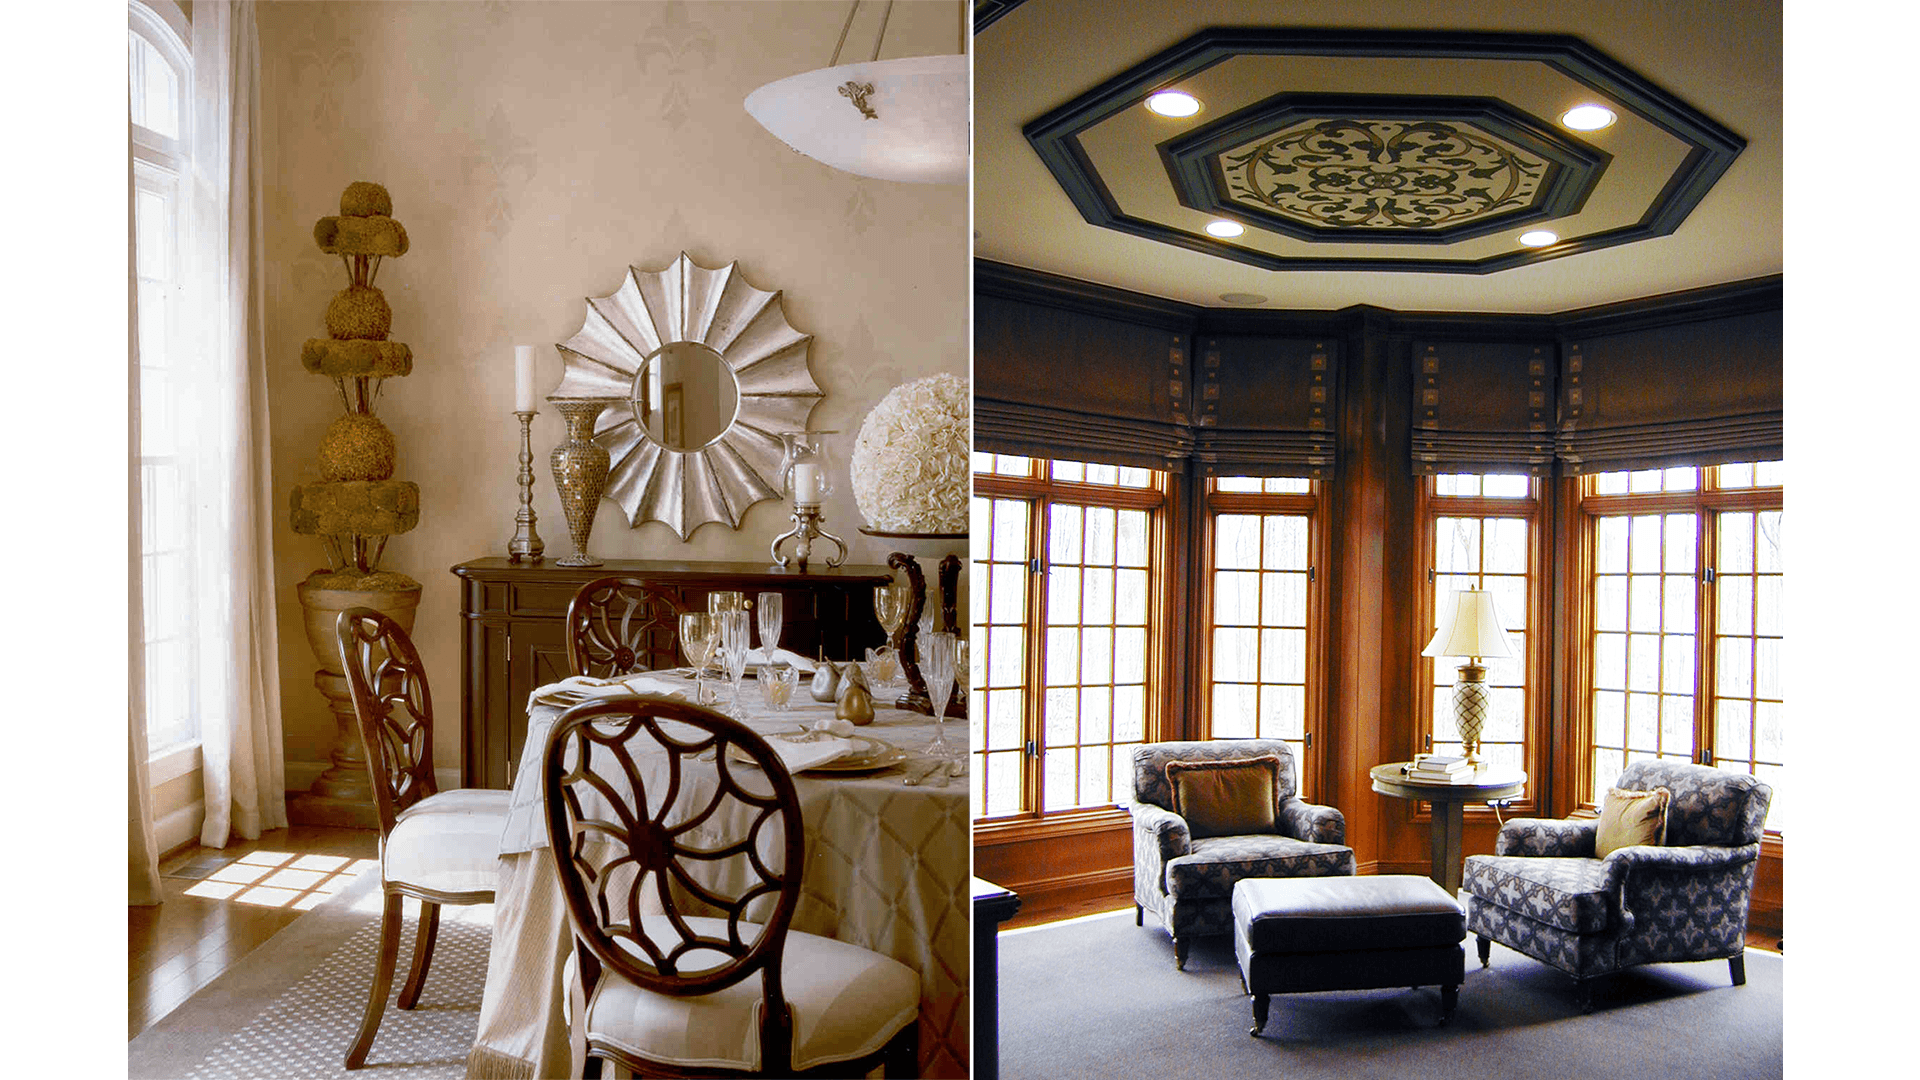 Woodley Dining Room & Library. Some optional features shown.